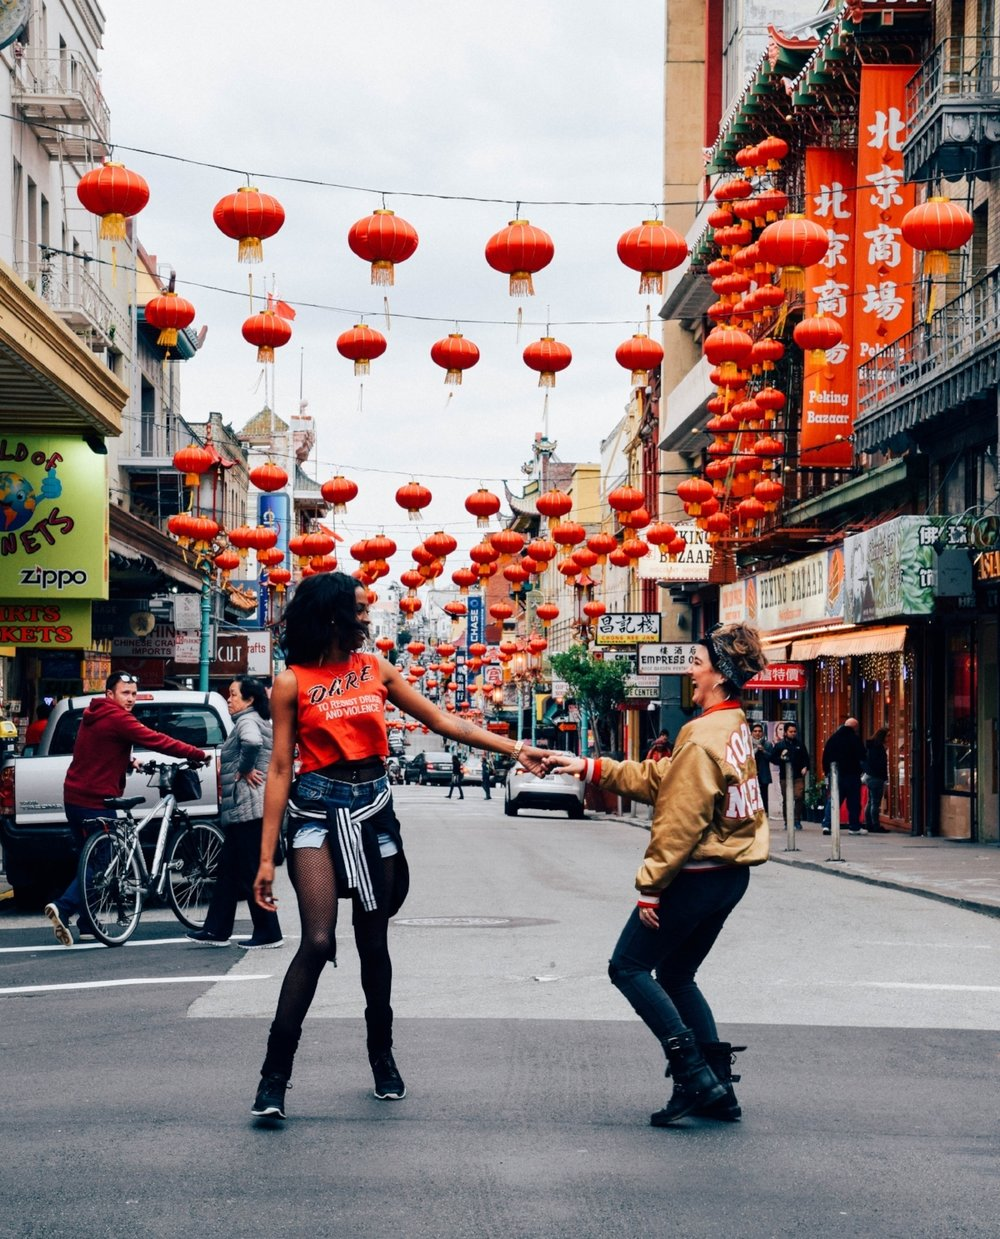 Chinatown: one rad photo location